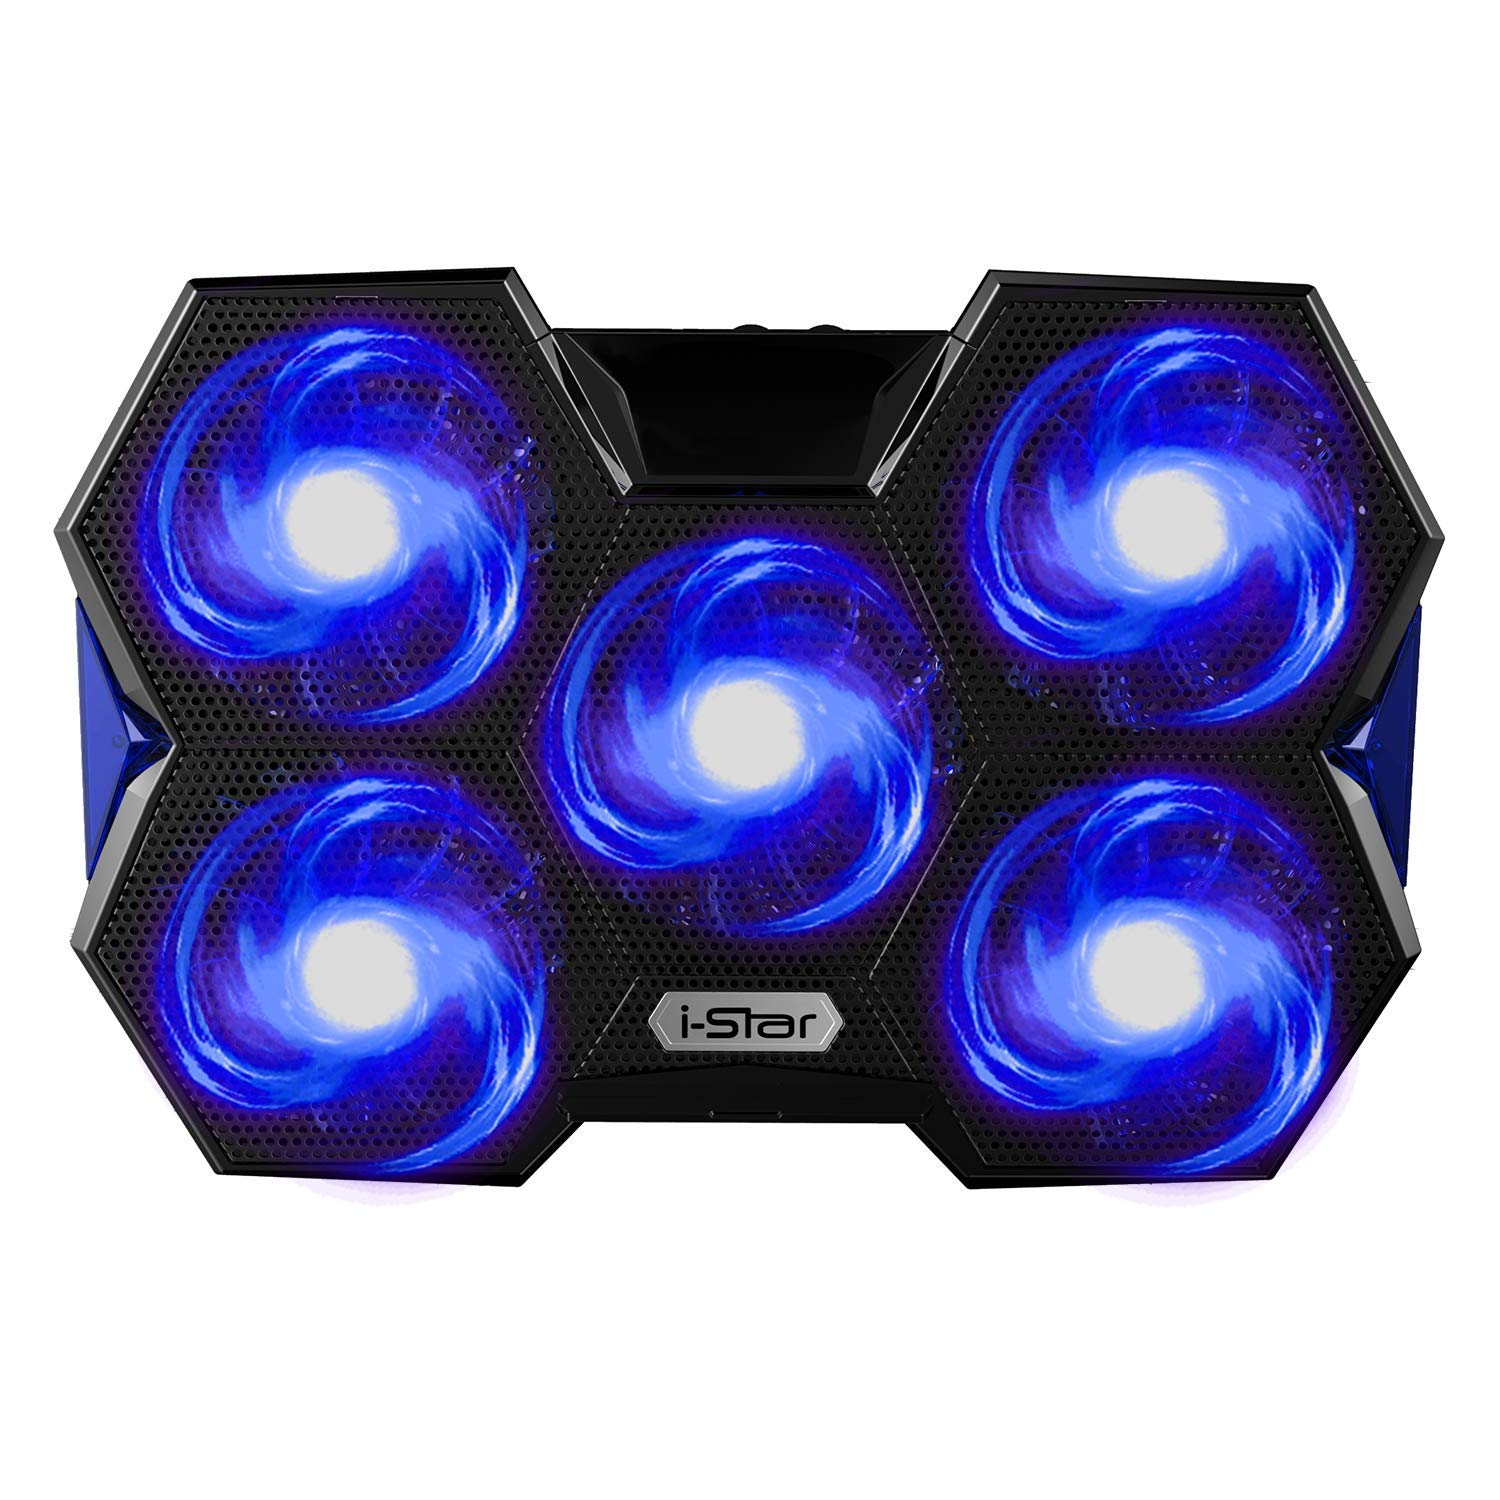 i-Star Laptop Cooling Pad Adjustable Stand - Gaming Notebook Cooler with Metal Mesh 5 Silent Rotatable Fans 2 USB Ports and LED Light Fits 12''-17'' Laptop, Blue